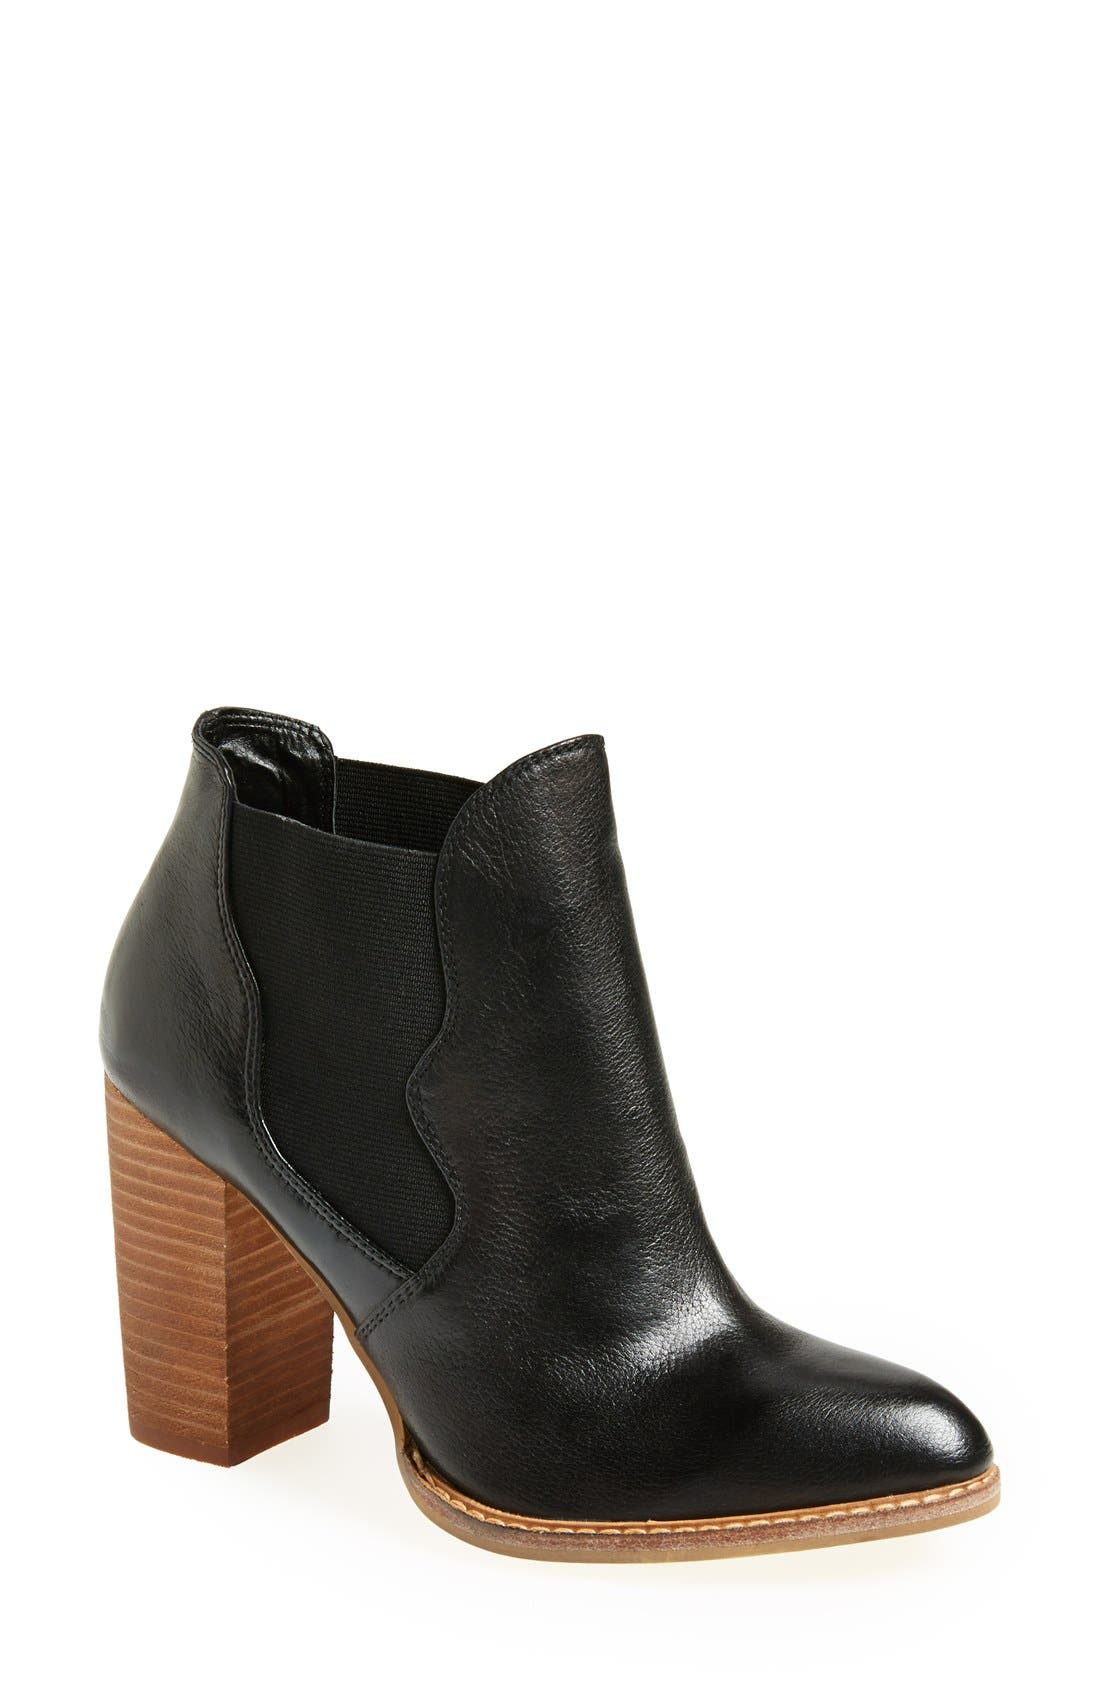 'Zane' Bootie, Main, color, 001